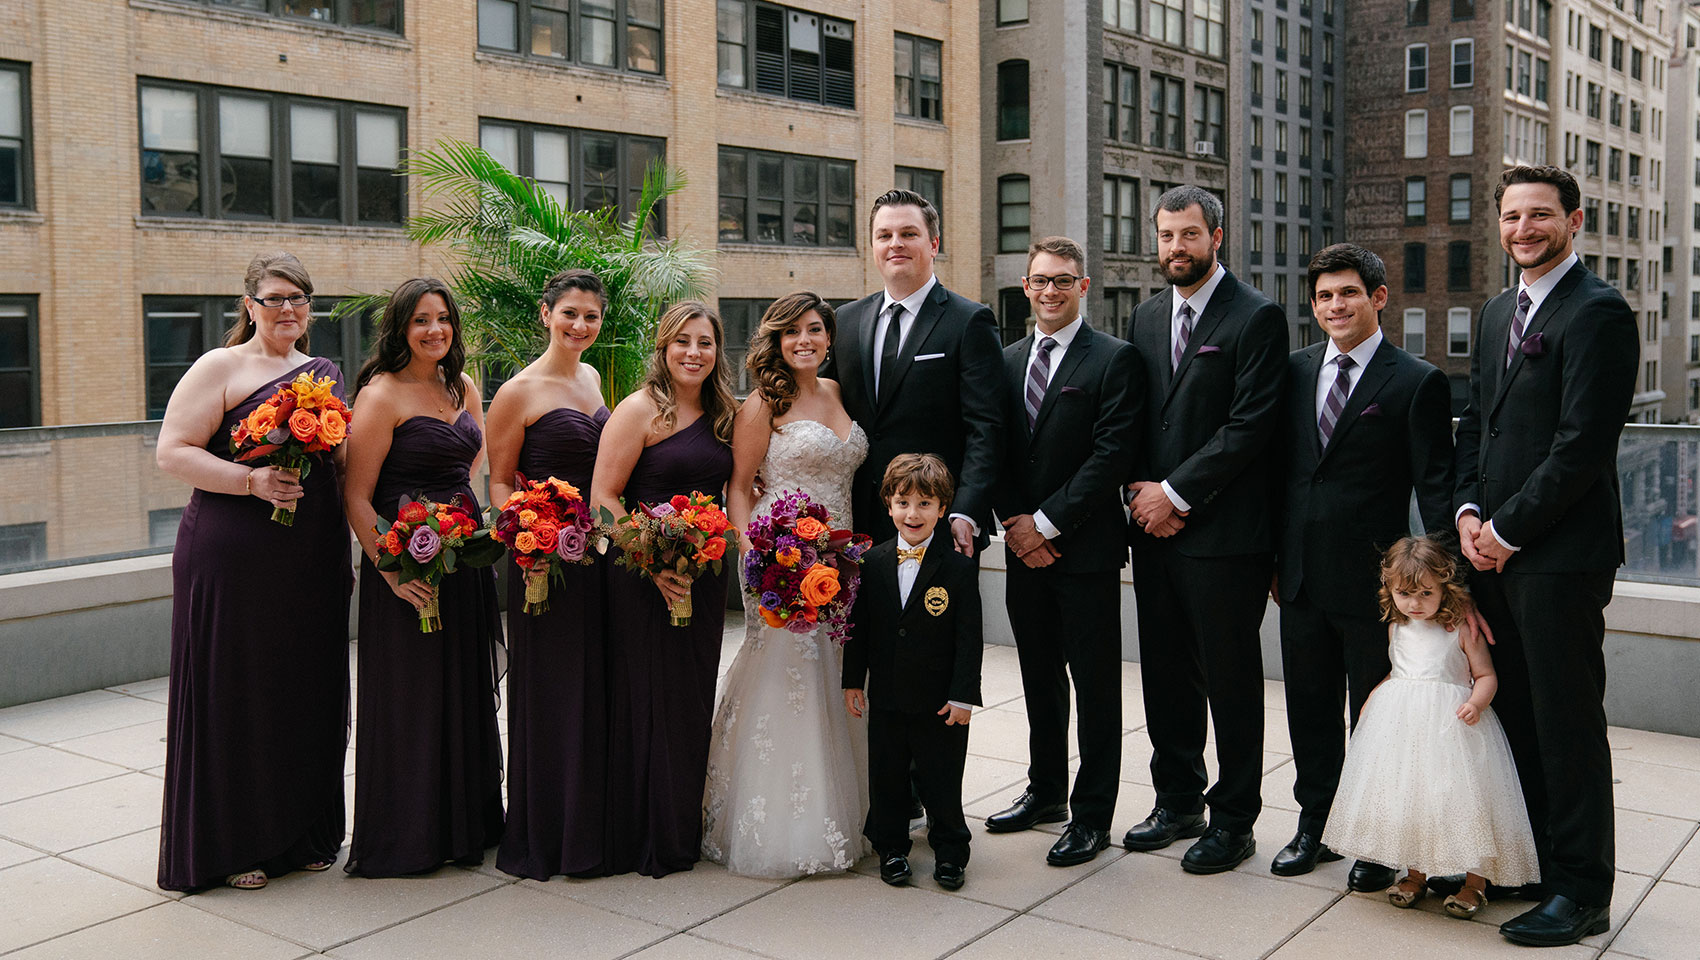 April and Daniel with their bridesmaids and groomsmen and two young children